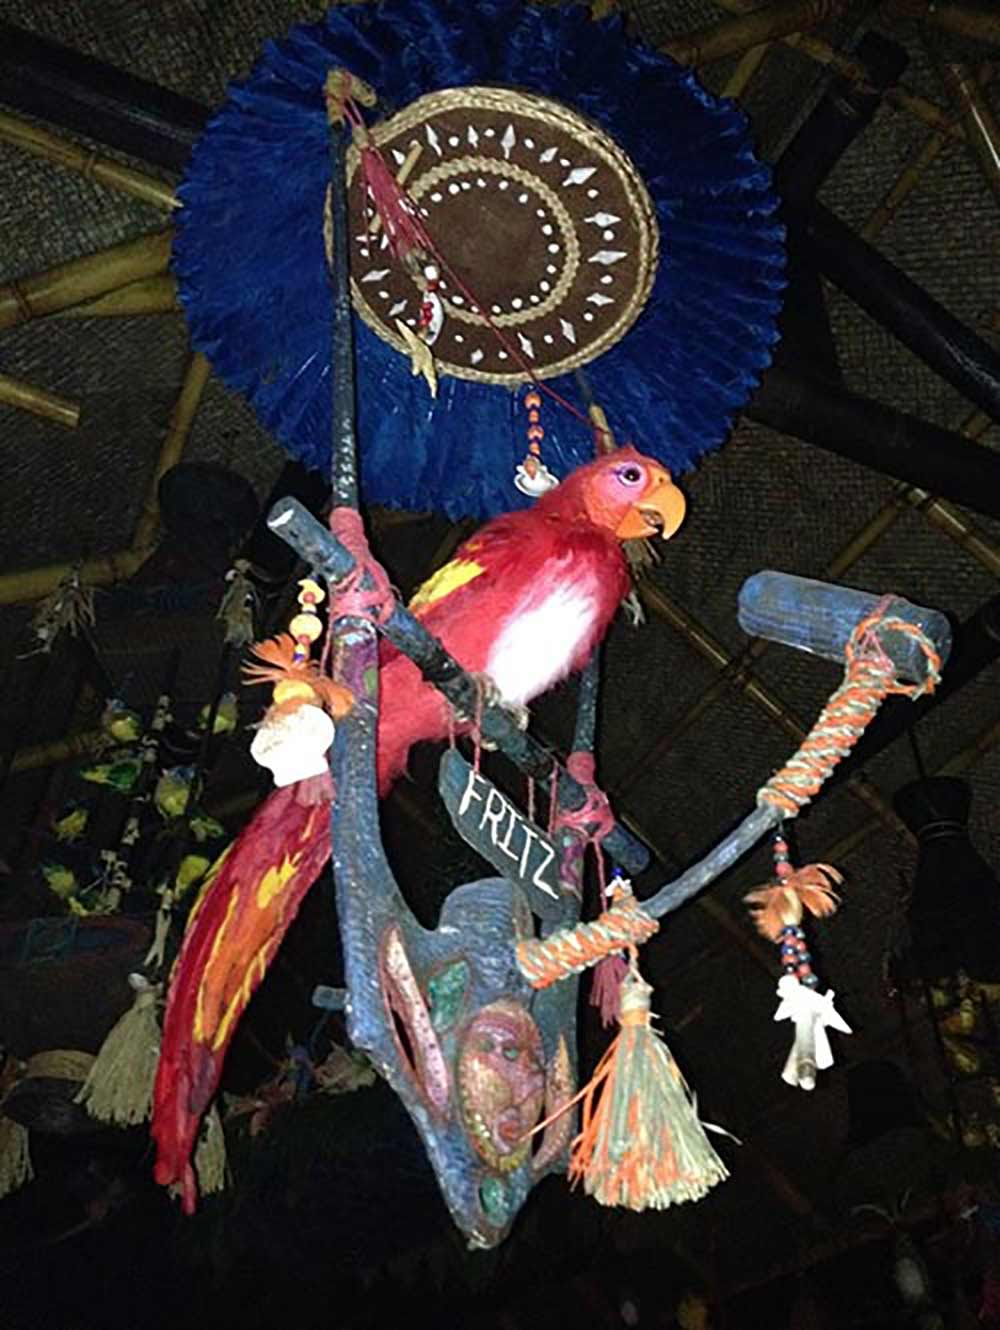 Tiki Room Disneyland red parrot in the show